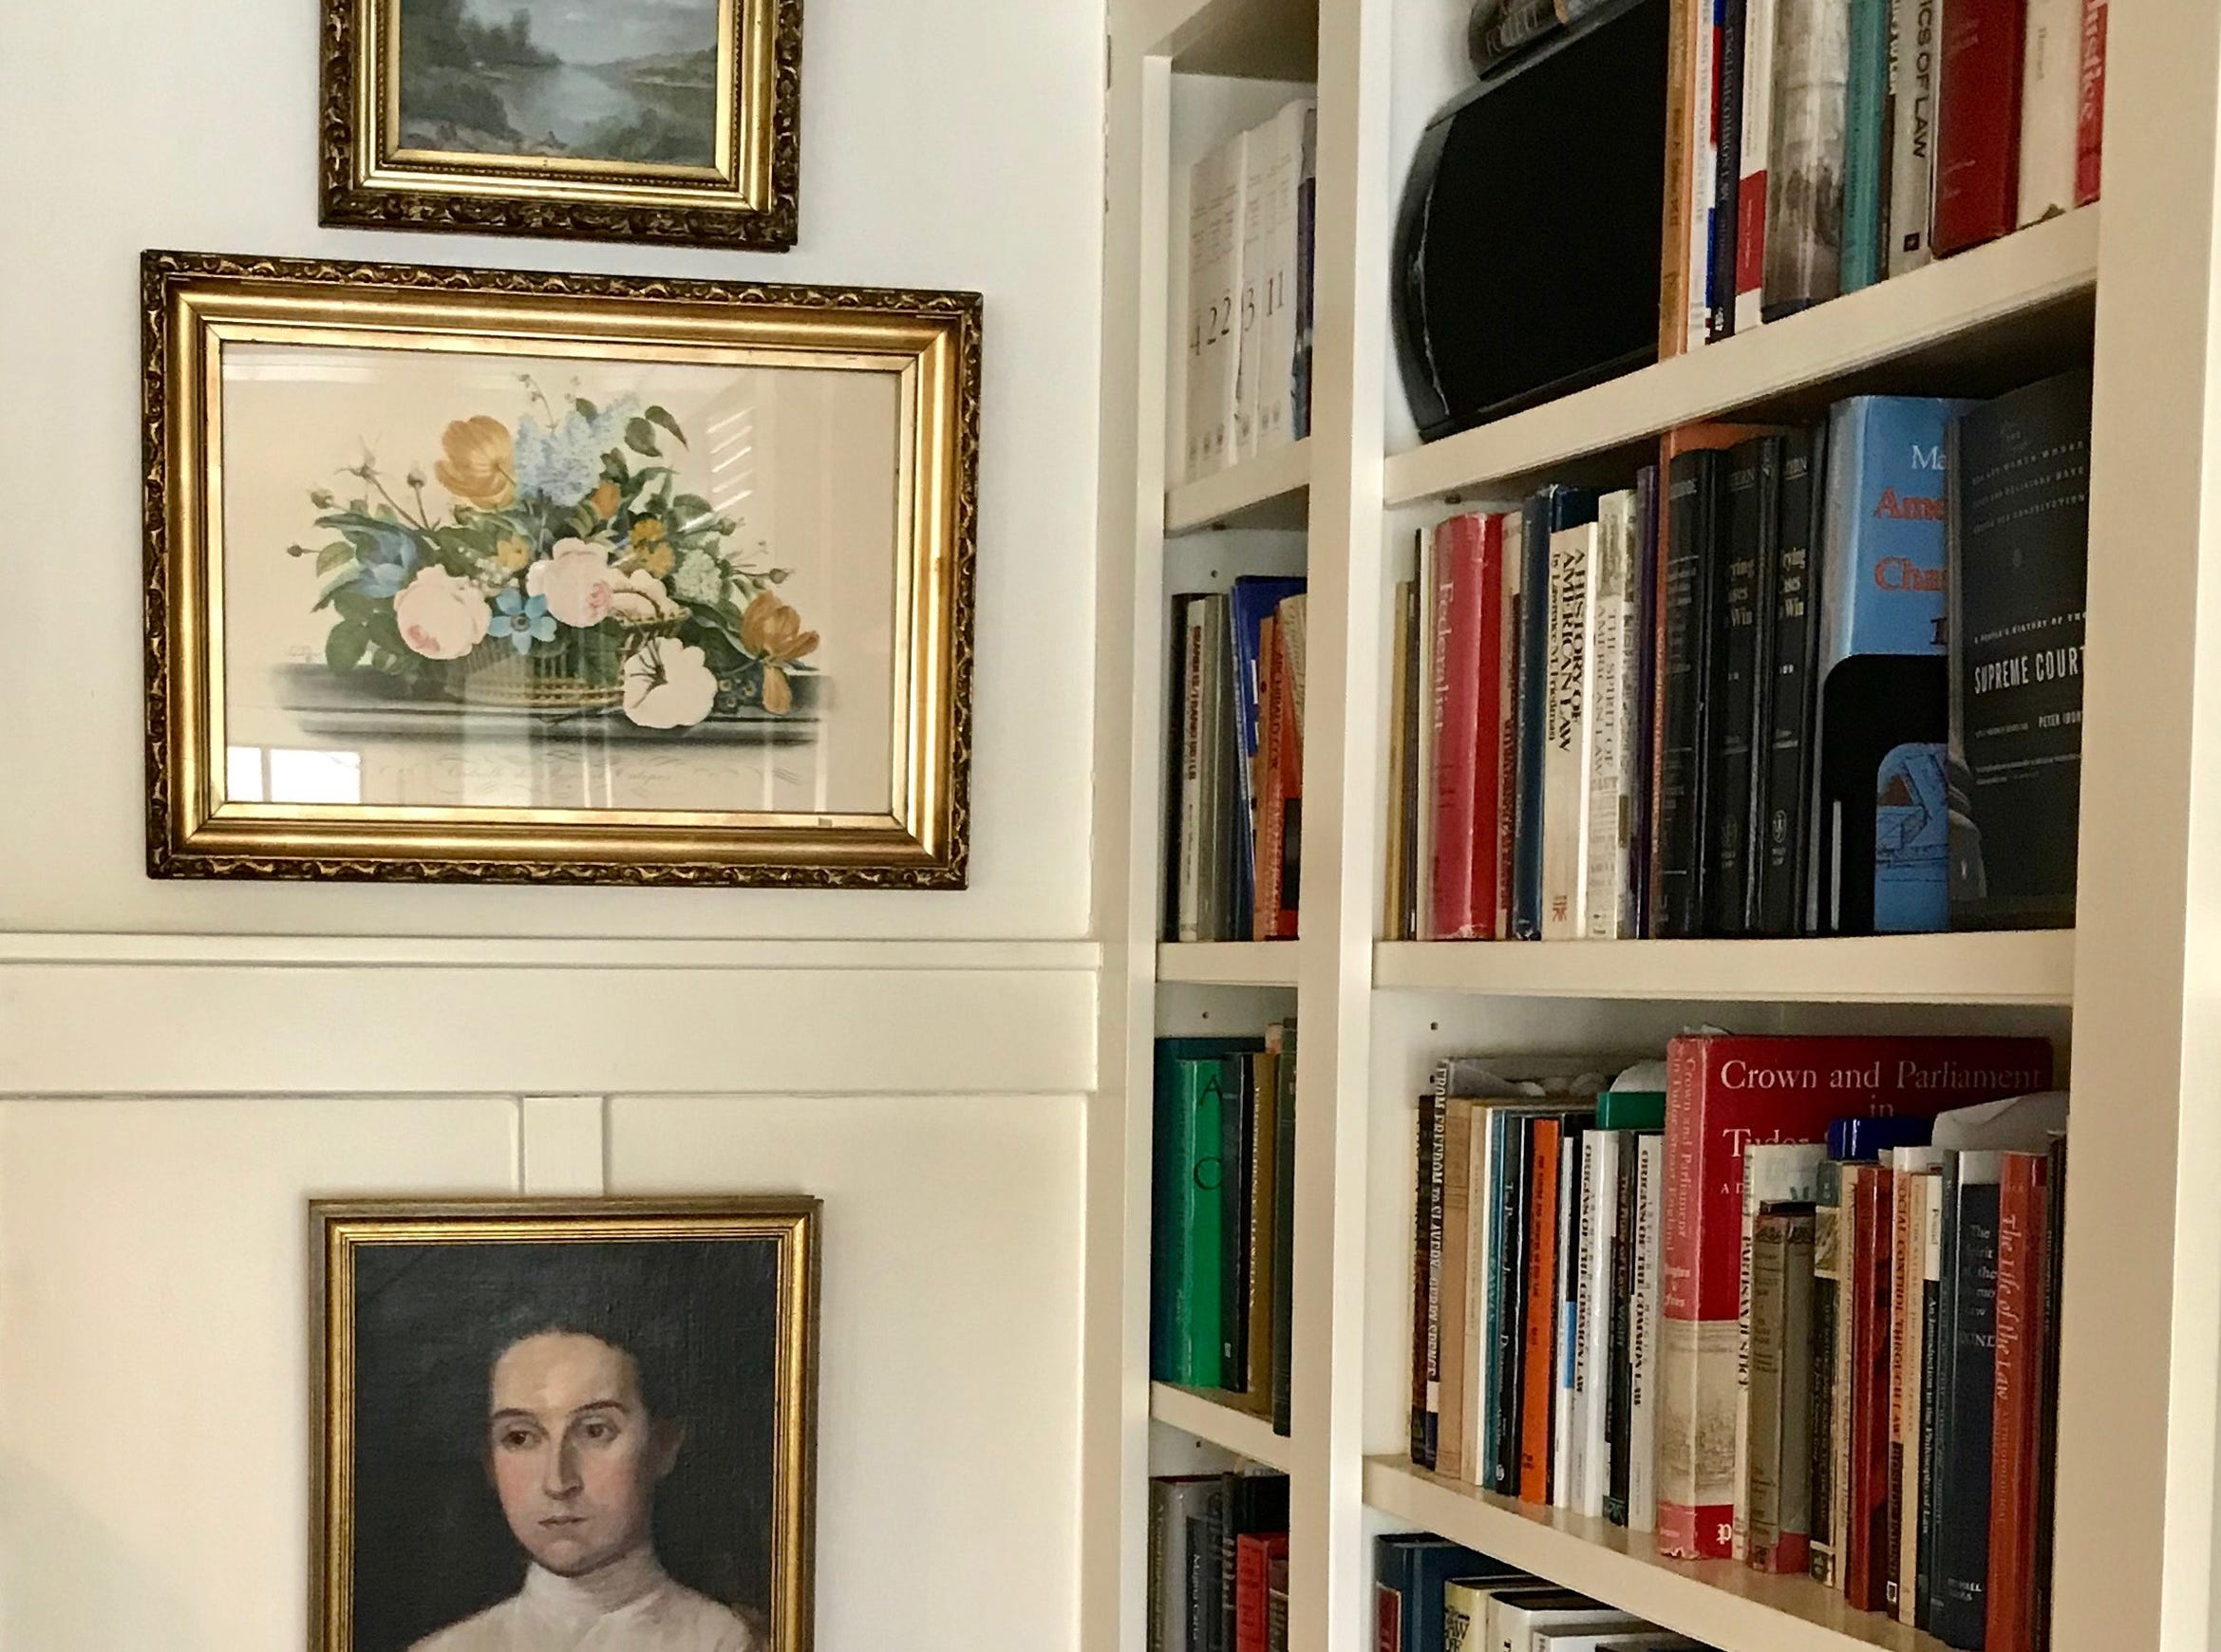 "Essential bookcases: Garrity has called bookcases one of the most ""essential pieces of furniture ever made."" But they don't have to be used for books. ""My all-time favorite way to use bookcases is to see them as part library shelf, part display shelf,"" writes Garrity. ""We like to mix accents, like pottery, seasonal greens and artwork, with stacks of books. Have a small piece of artwork you love? Prop it in an easel on a shelf."""